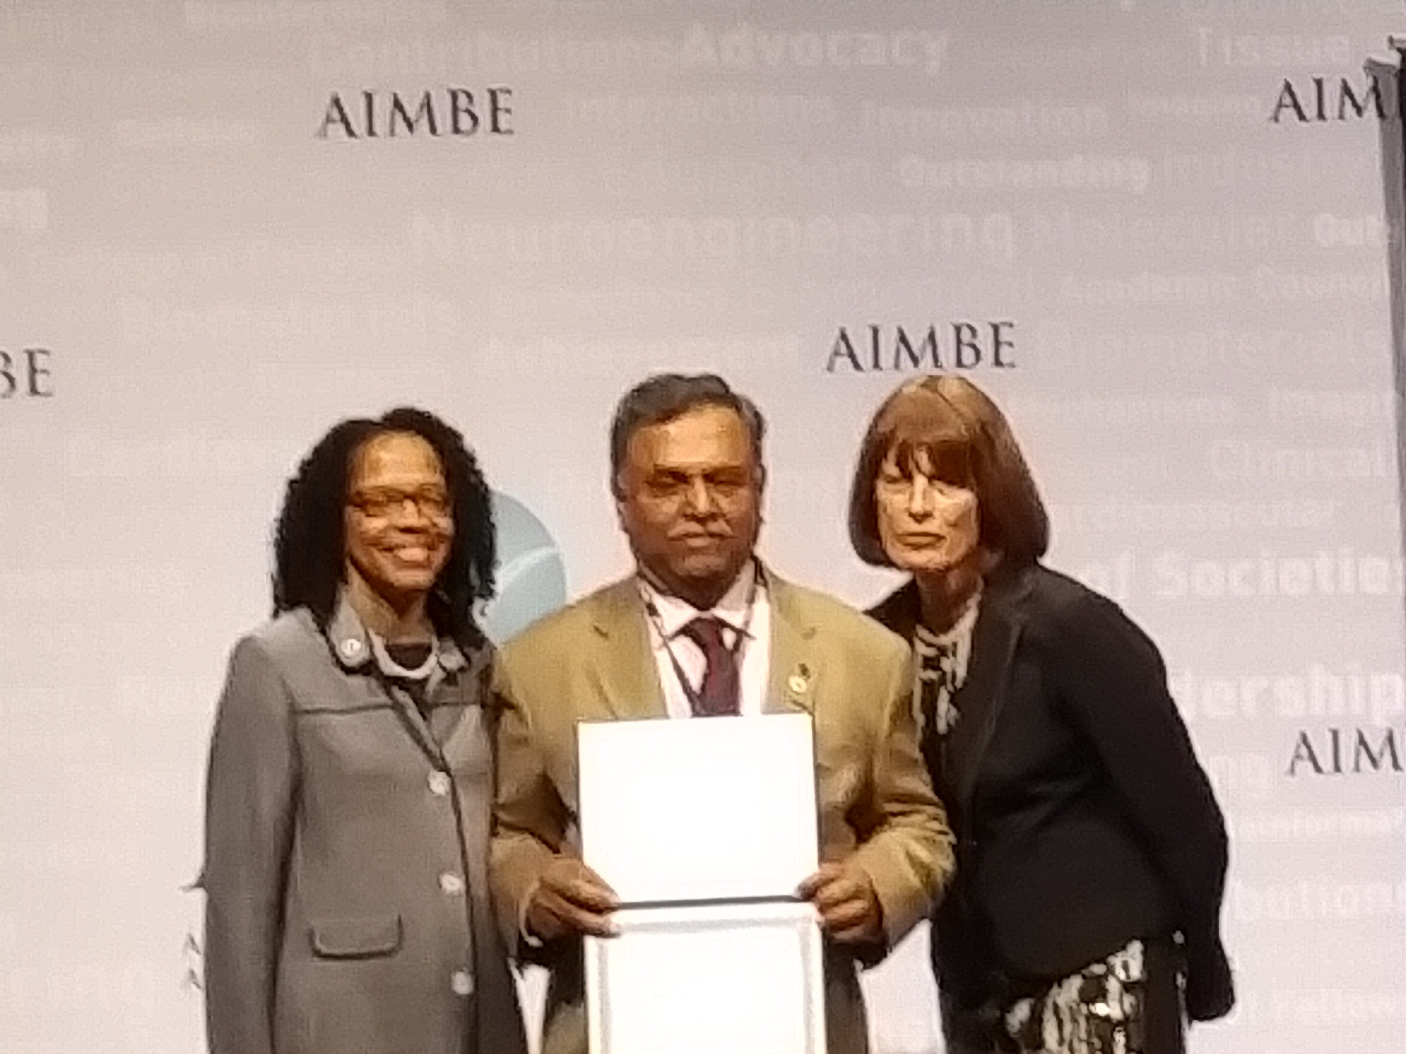 Dr. Iyengar gets inducted into College of Fellows in the AIMBE